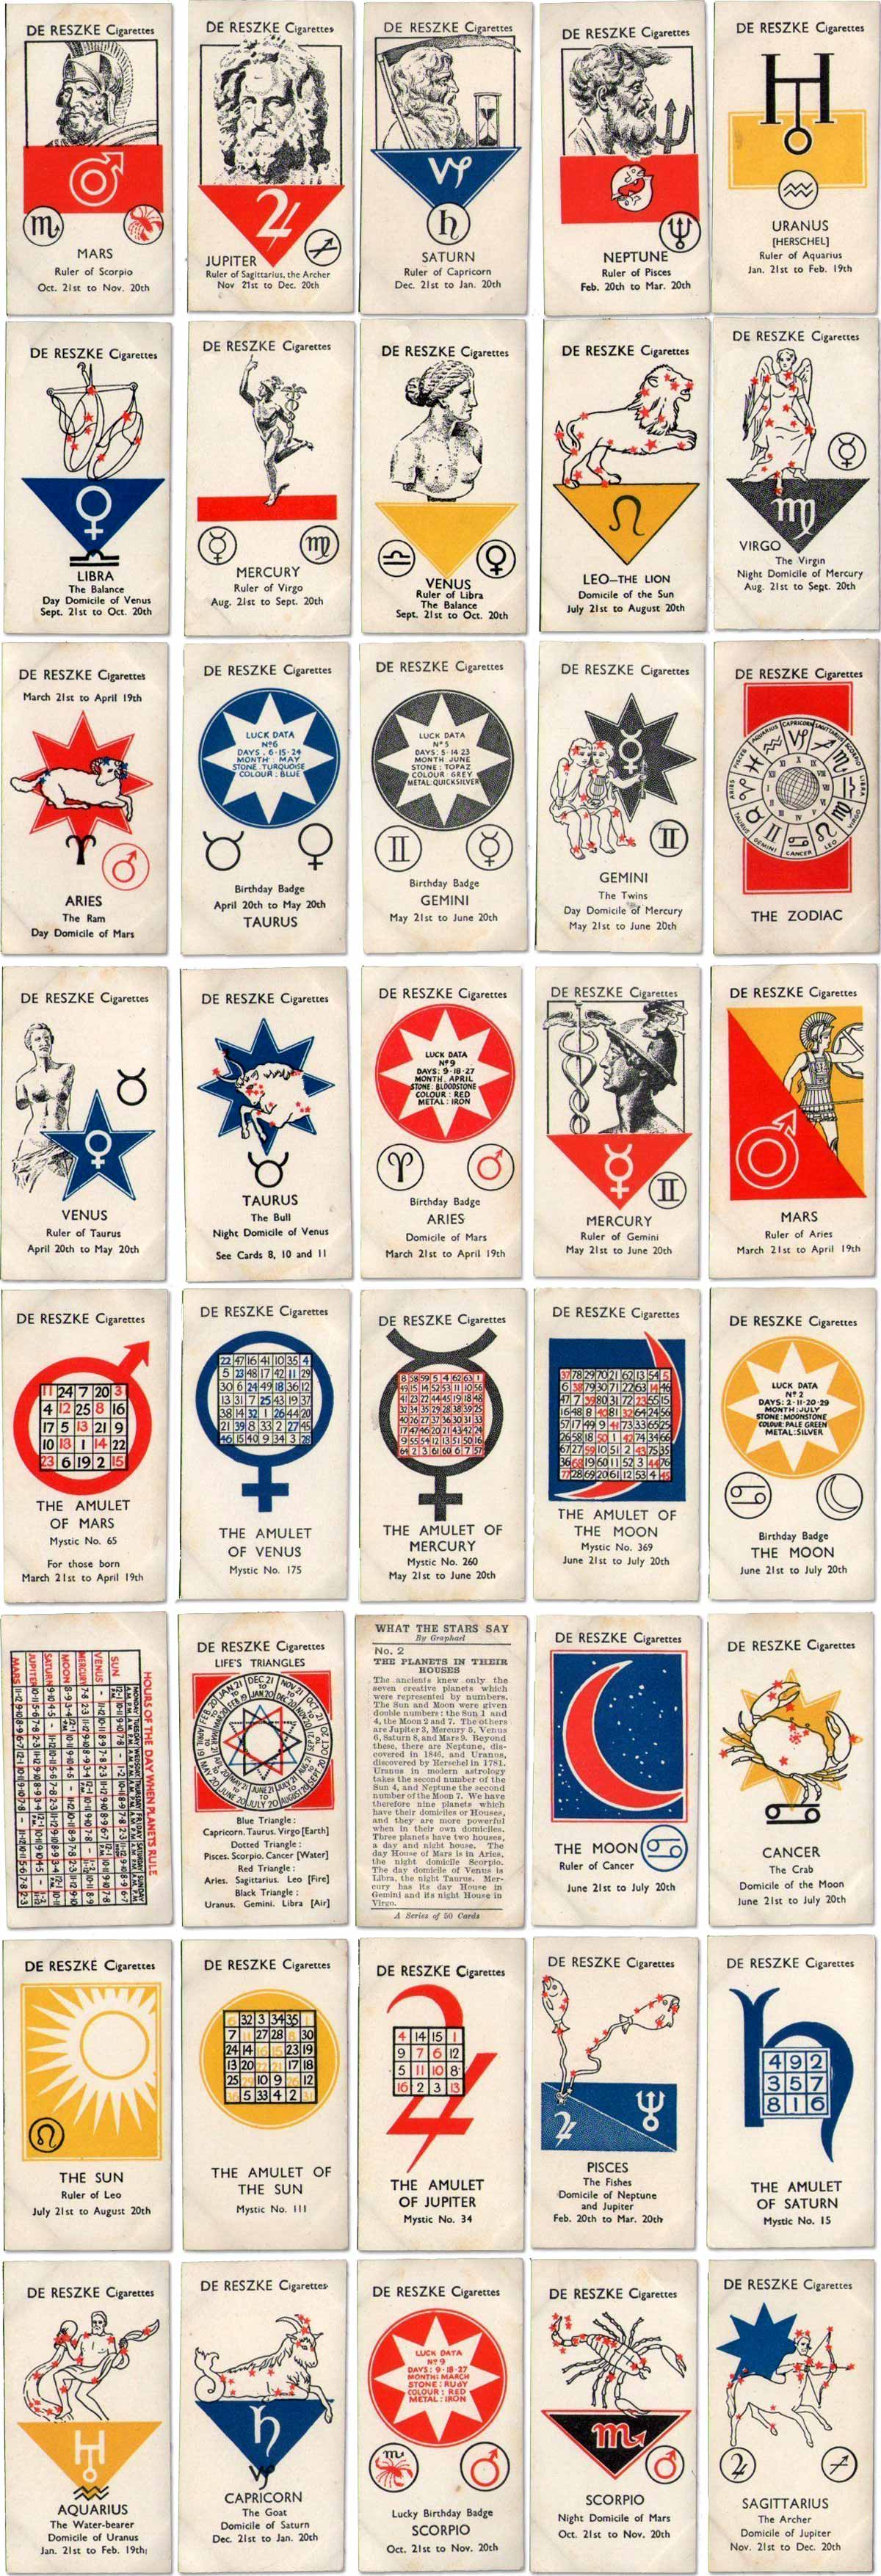 "De Reszke Cigarettes ""What the Stars Say"" astrology cards issued by J. Milhoff & Co., 1934"